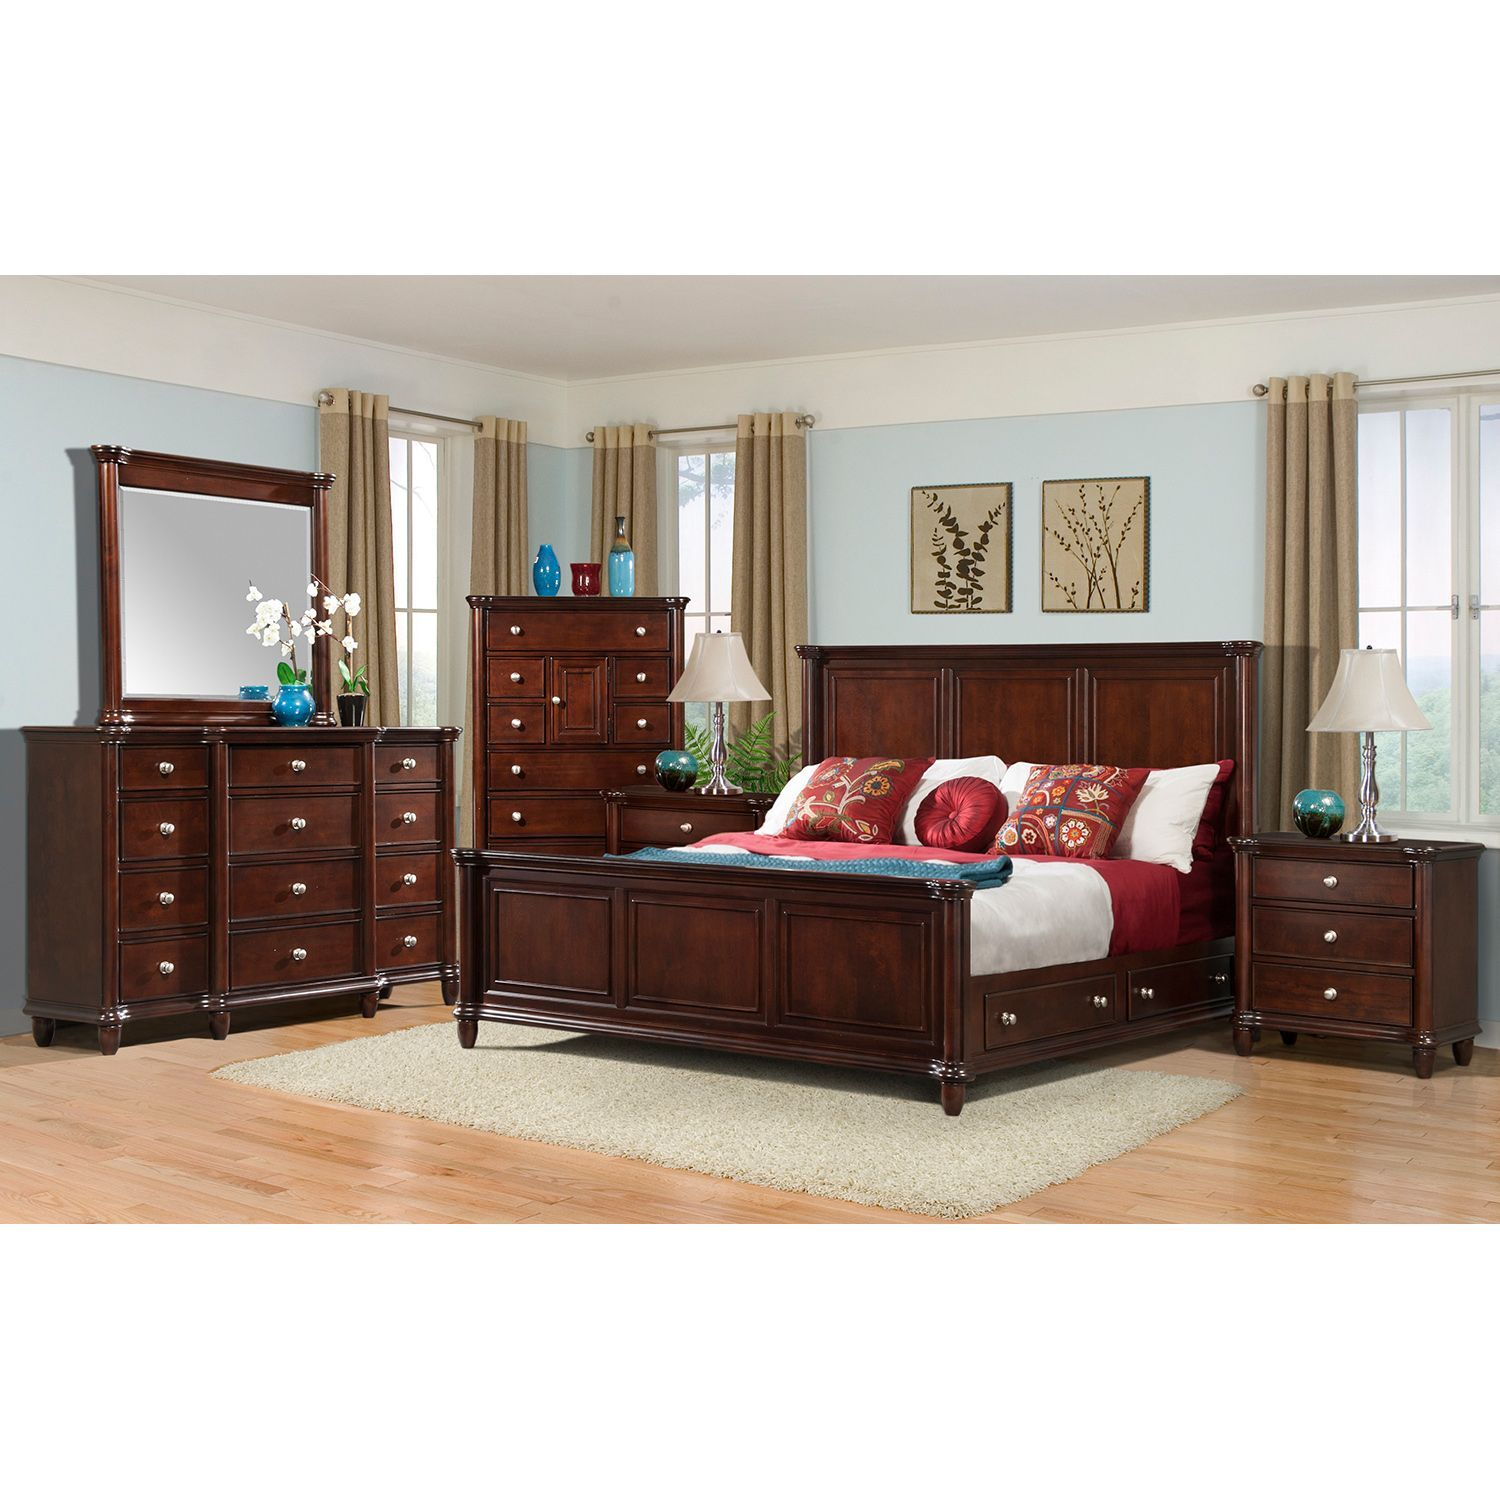 6 pieces king storage bedroom sets storage drawers frame